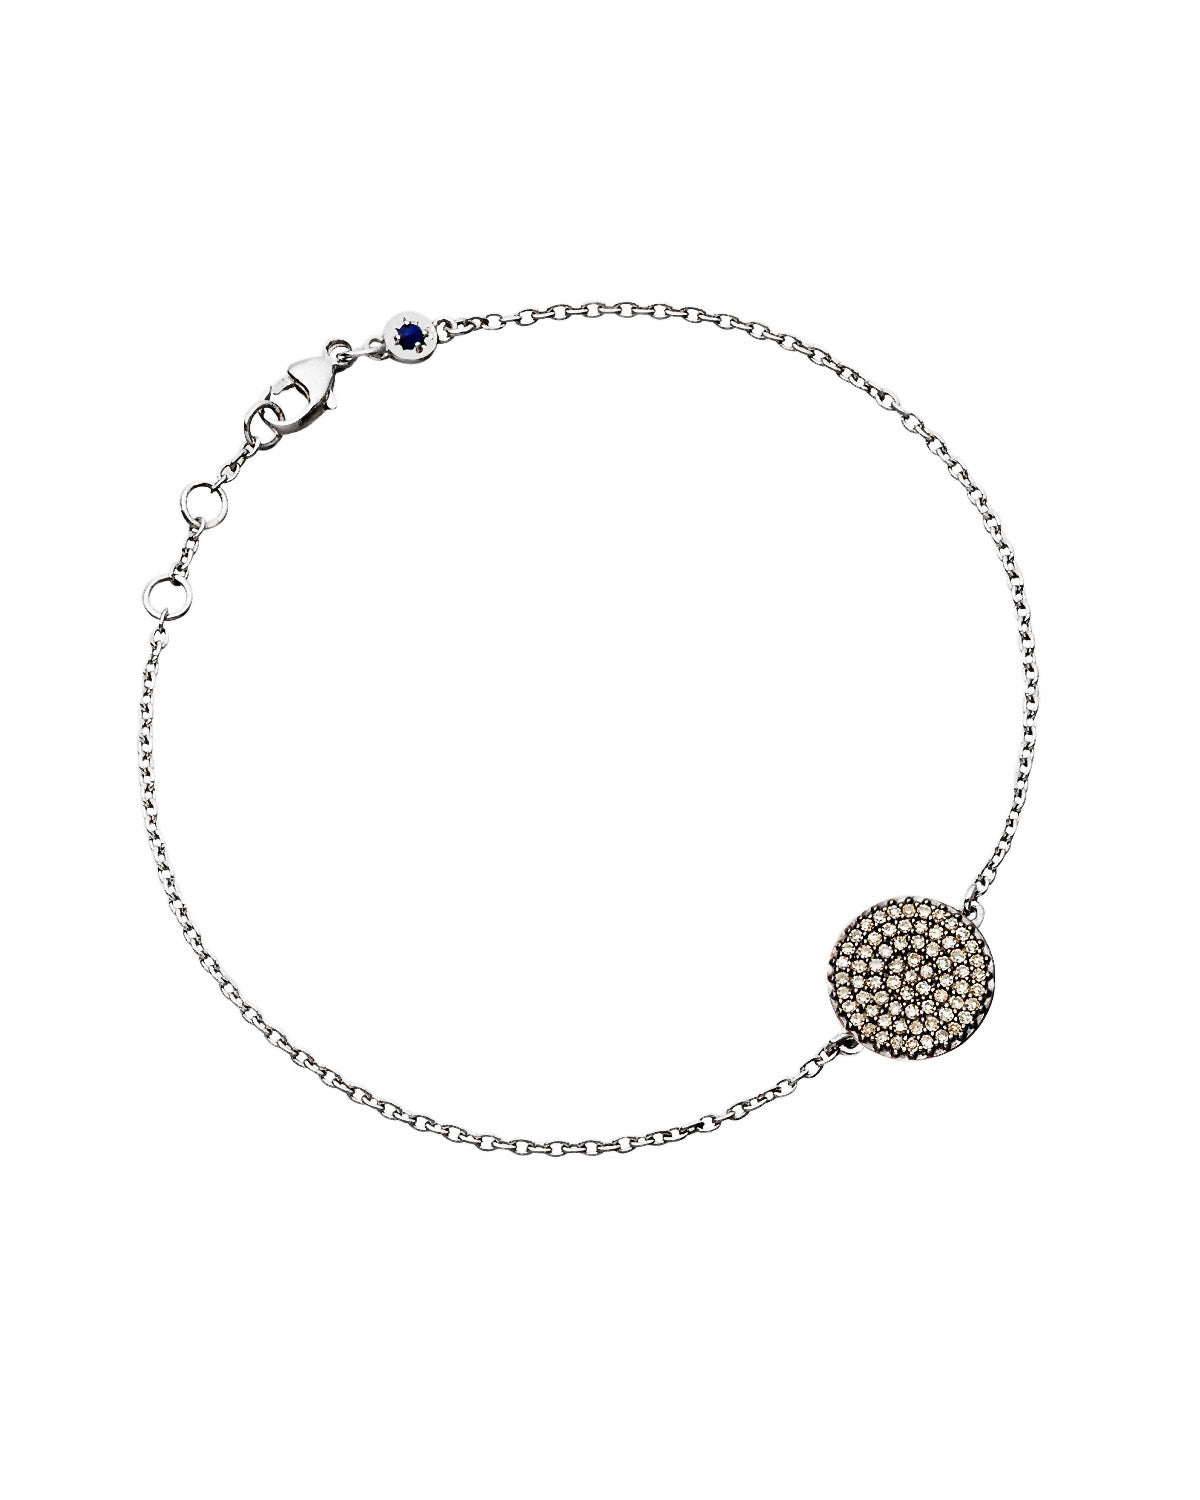 Starlight Disk Layering Bracelet in Sterling Silver